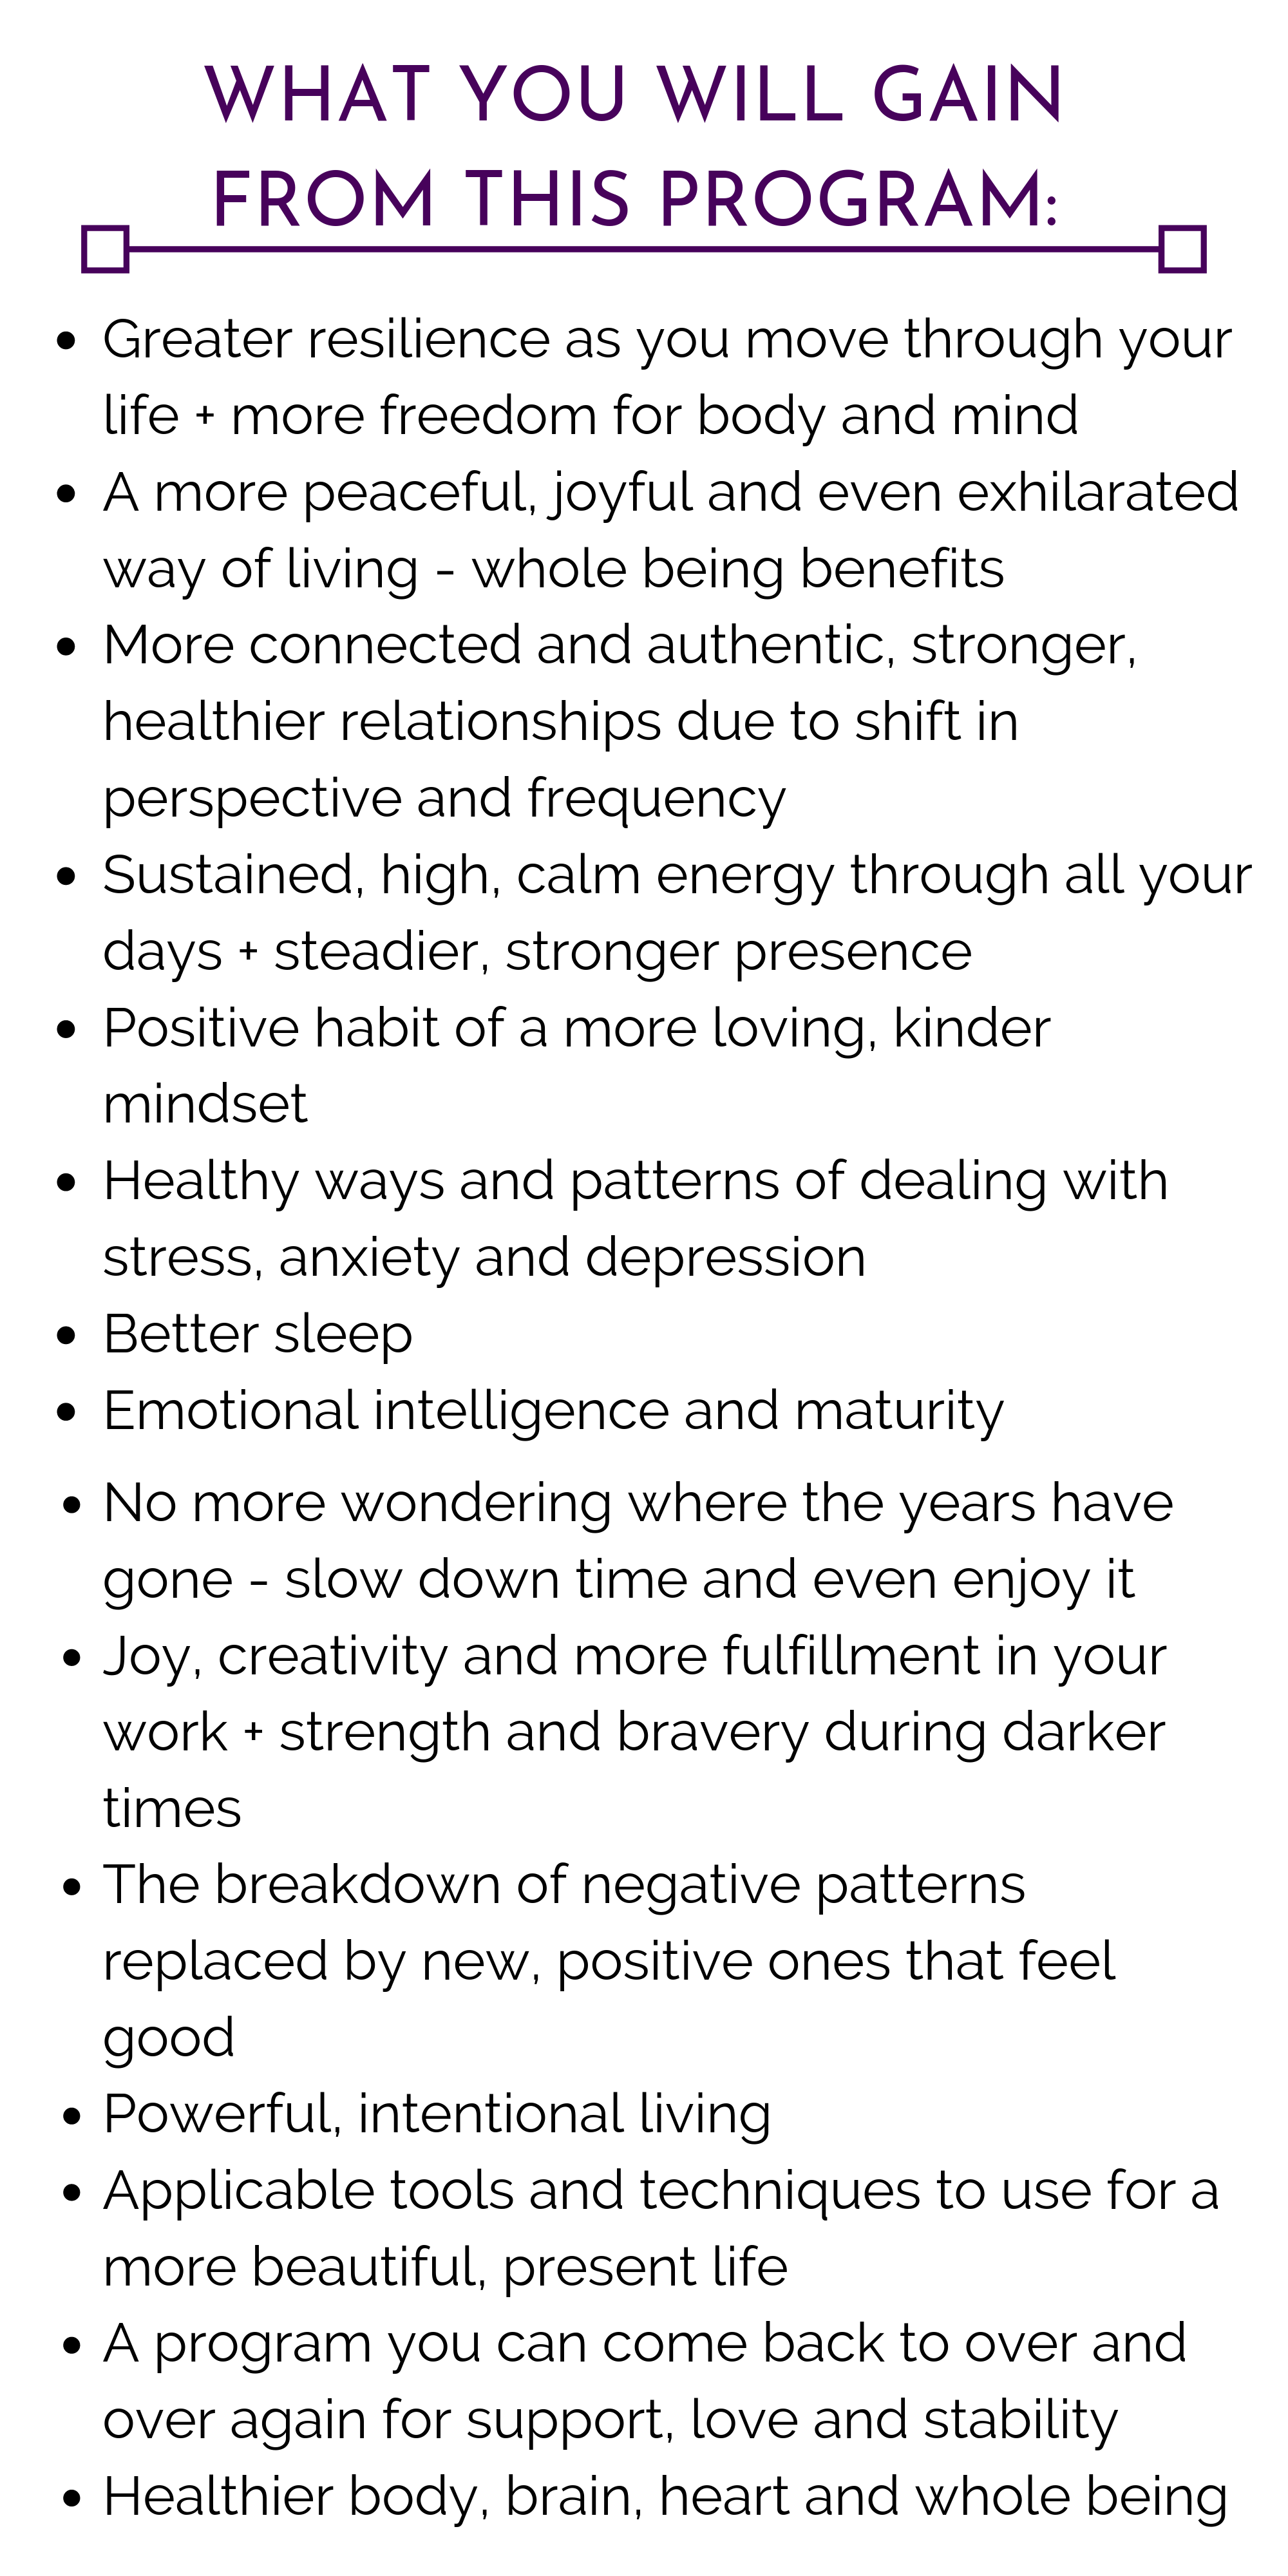 Greater resilience as you move through your life + more freedom for body and mind A more peaceful, joyful and even exhilarated way of living - whole being benefits More connected and authentic, healthier relationship.png